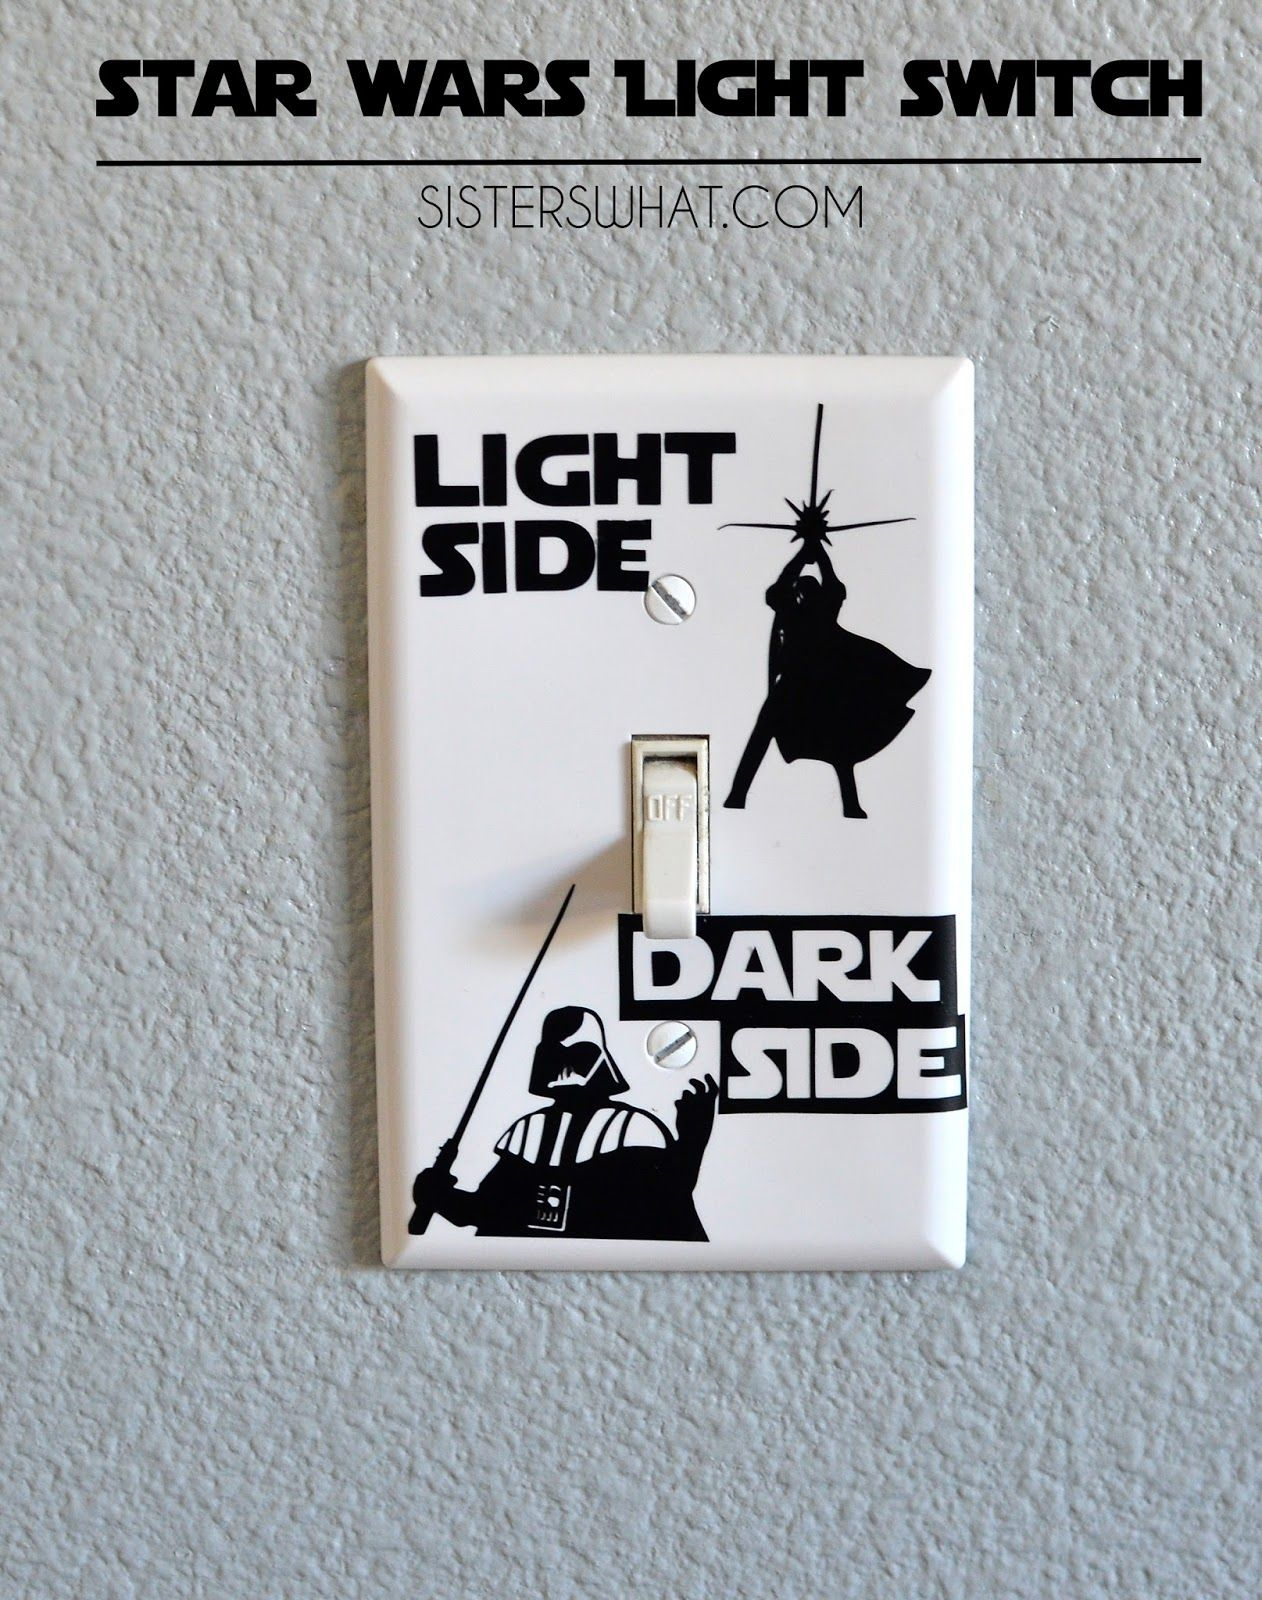 Vinilos Decorativos Star Wars Star Wars Light Switch Silhouette Challenge Sublimacion Vinil